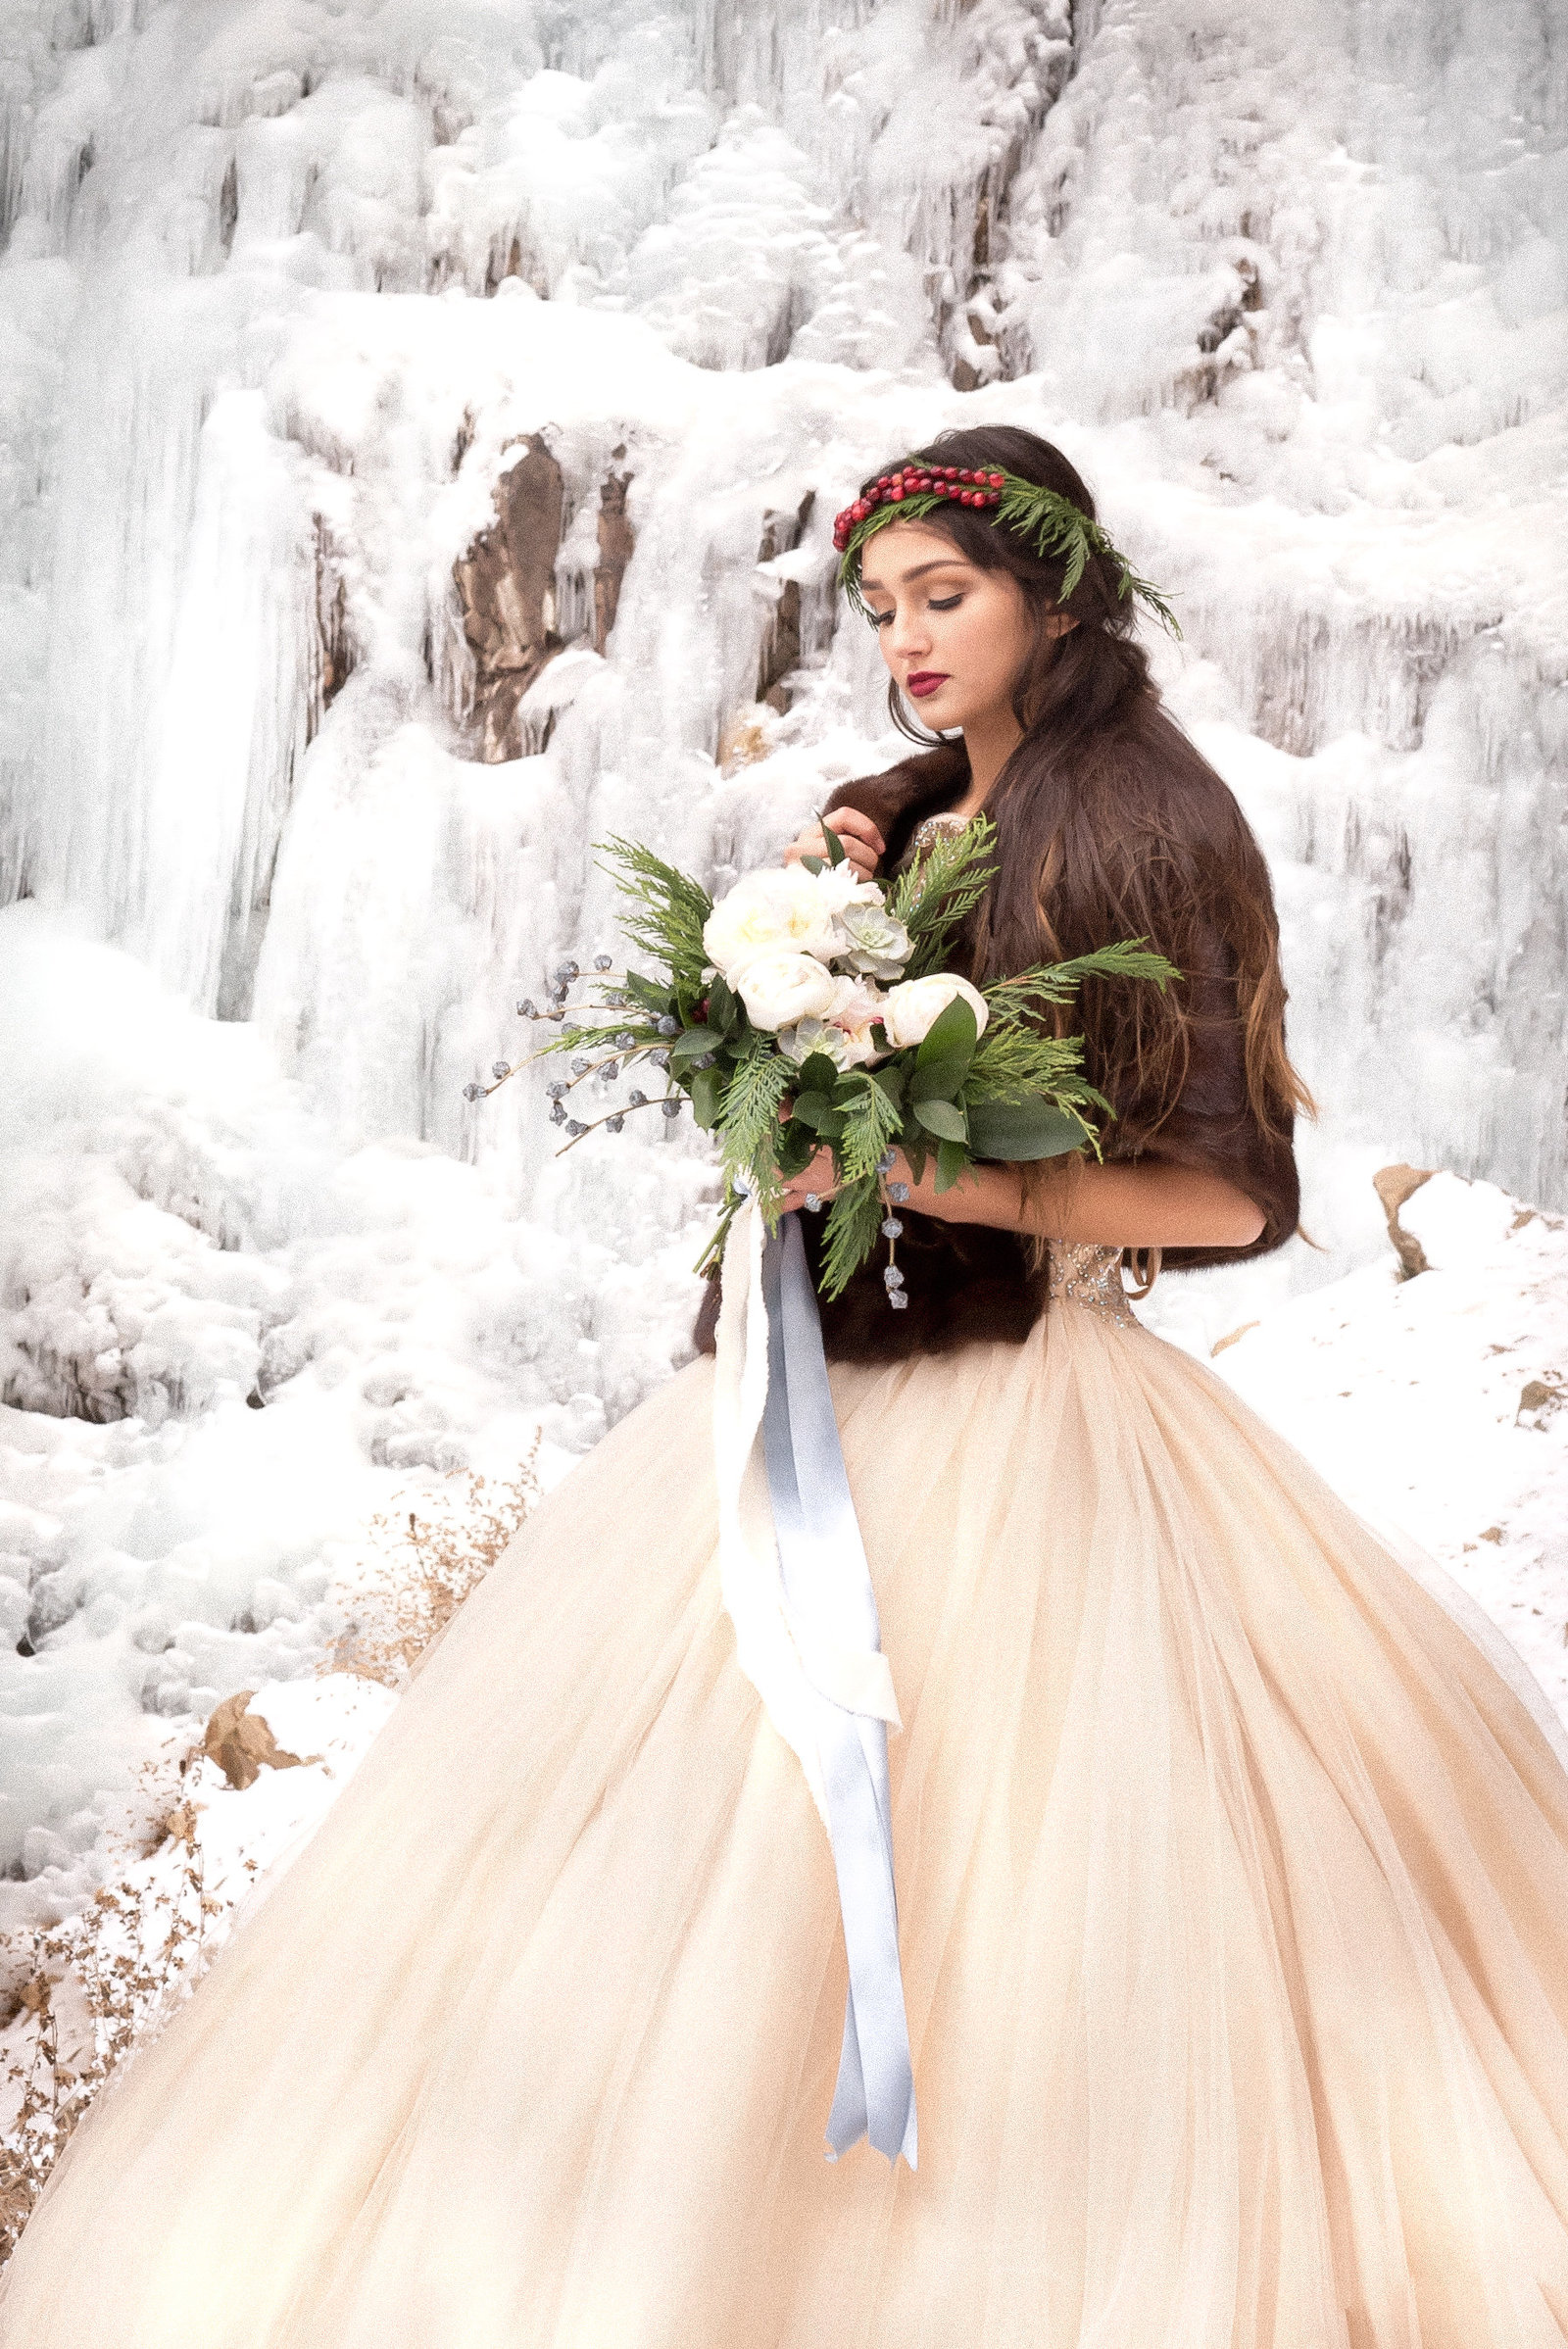 Kamera Lynn Photography Winter Cranberry Floral Crown Velvet Cake Frozen Waterfall Bridal Photoshoot_0008